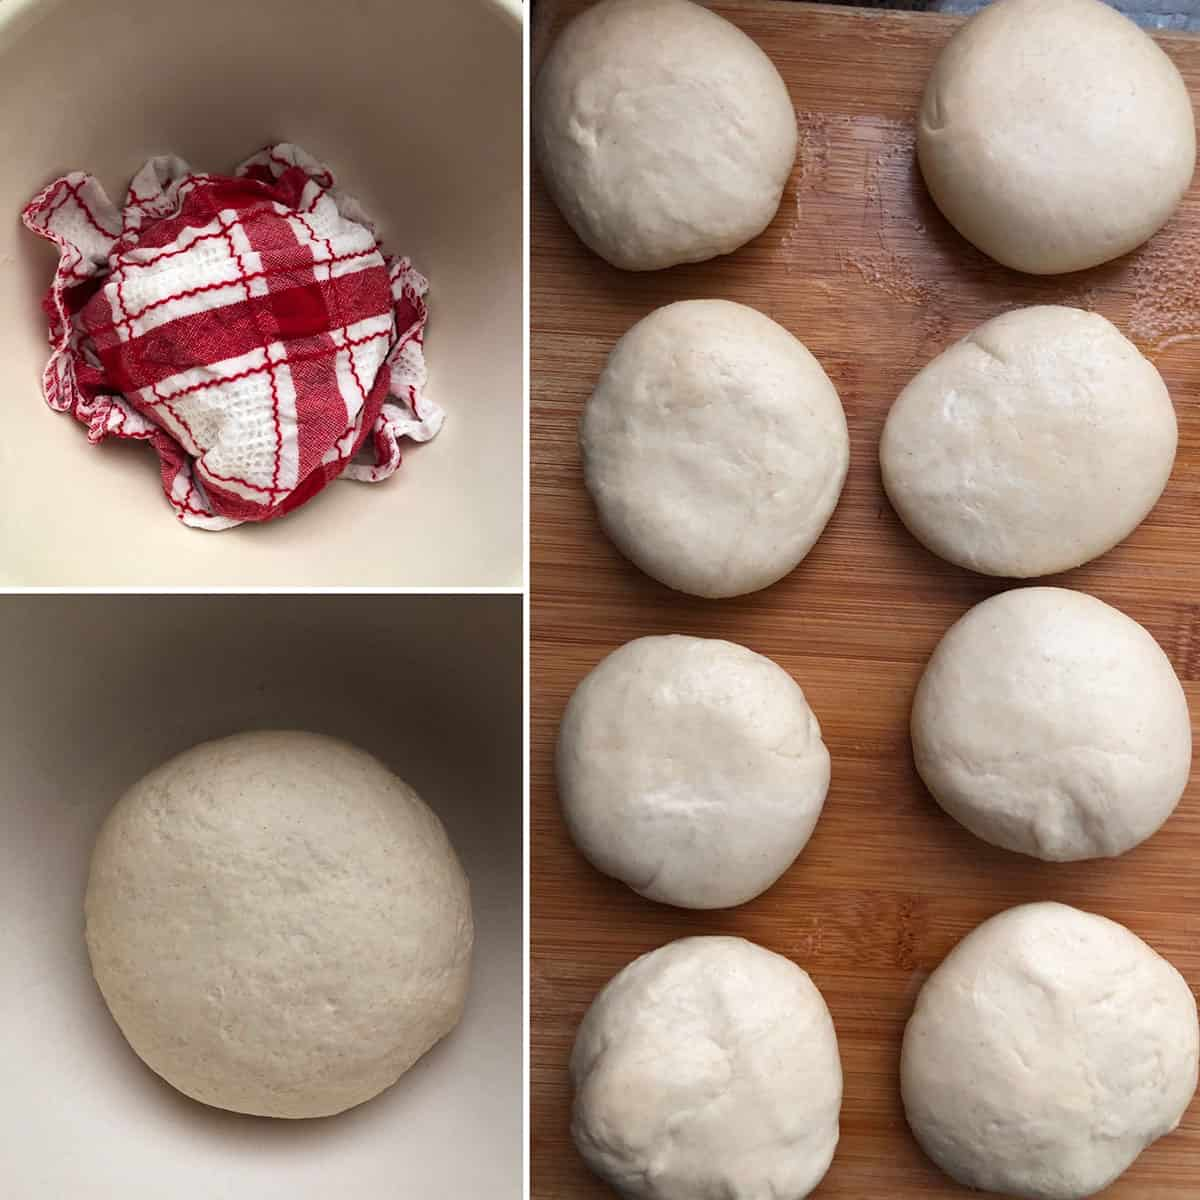 Dough set aside covered in damp kitchen towel and divided into 8 equal parts